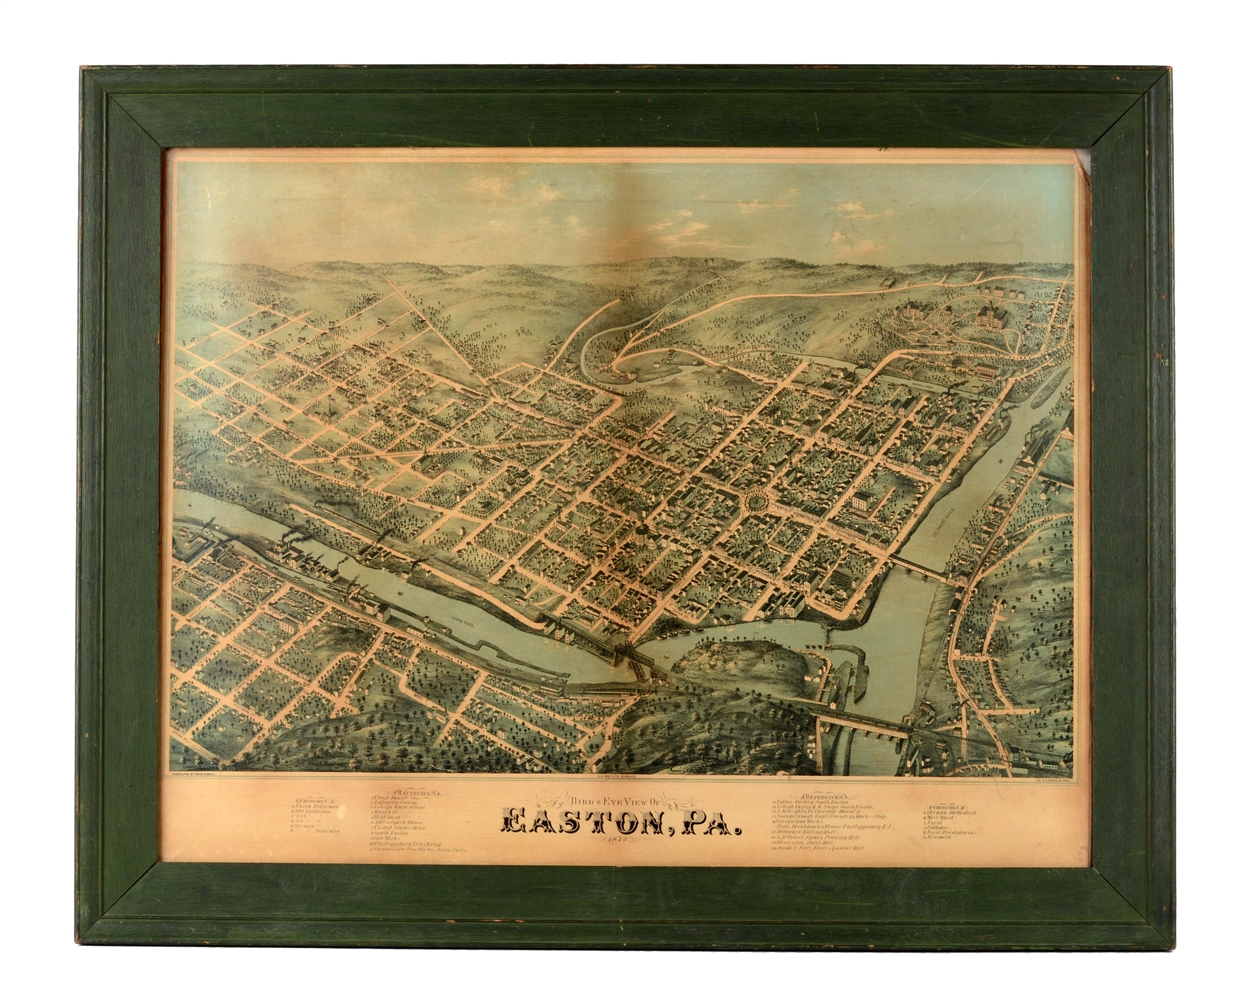 Framed Birdseye View of Easton, Pa.